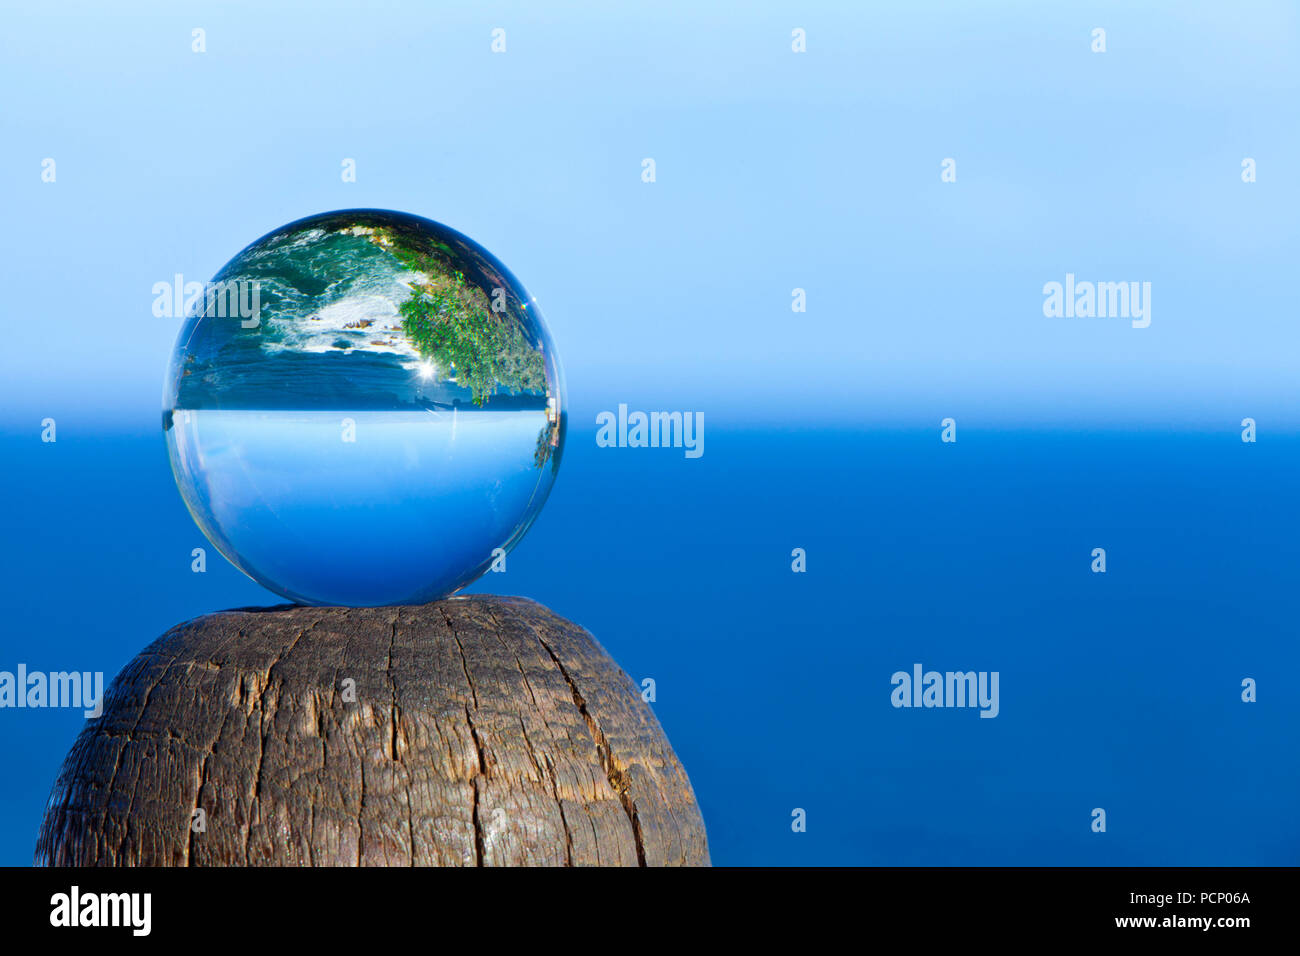 South Africa, Knysna, The Heads, The sea turned upside down in a glass ball - Stock Image